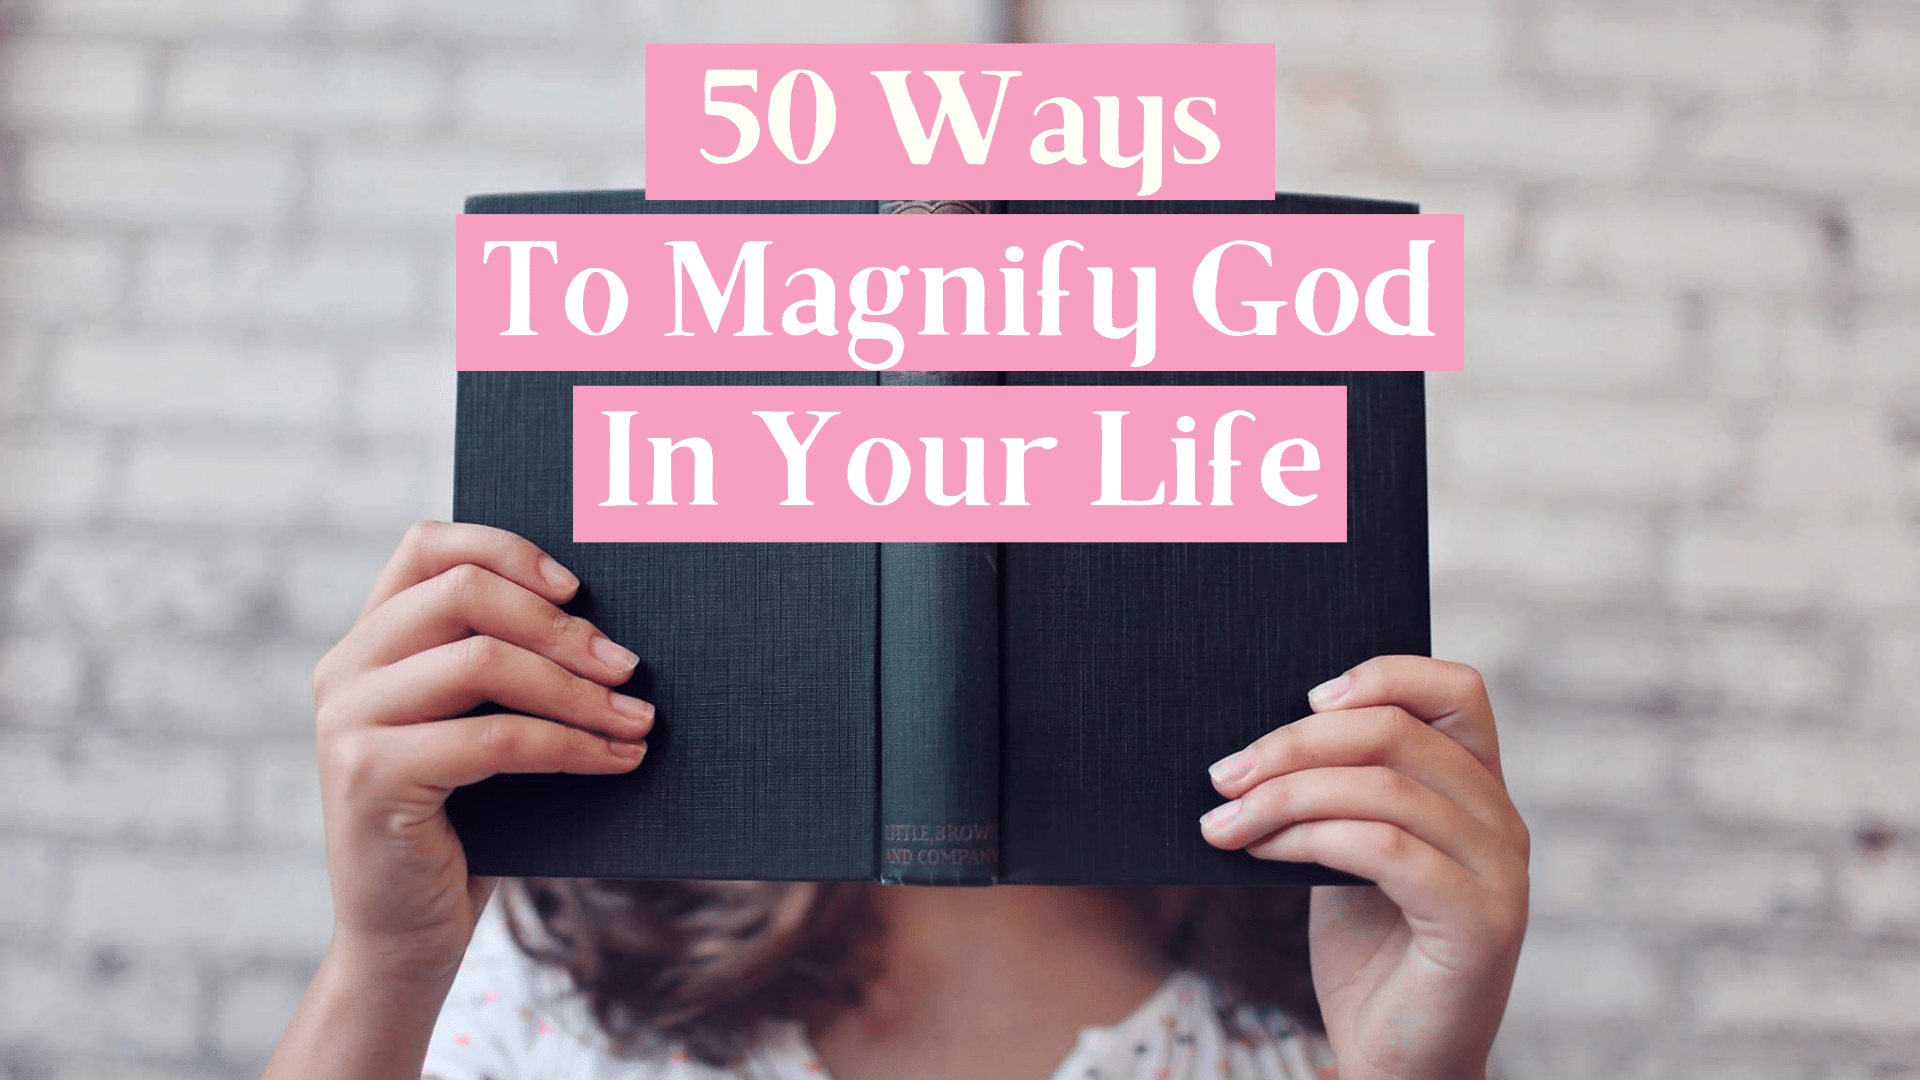 50 Ways to Magnify God In Your Life